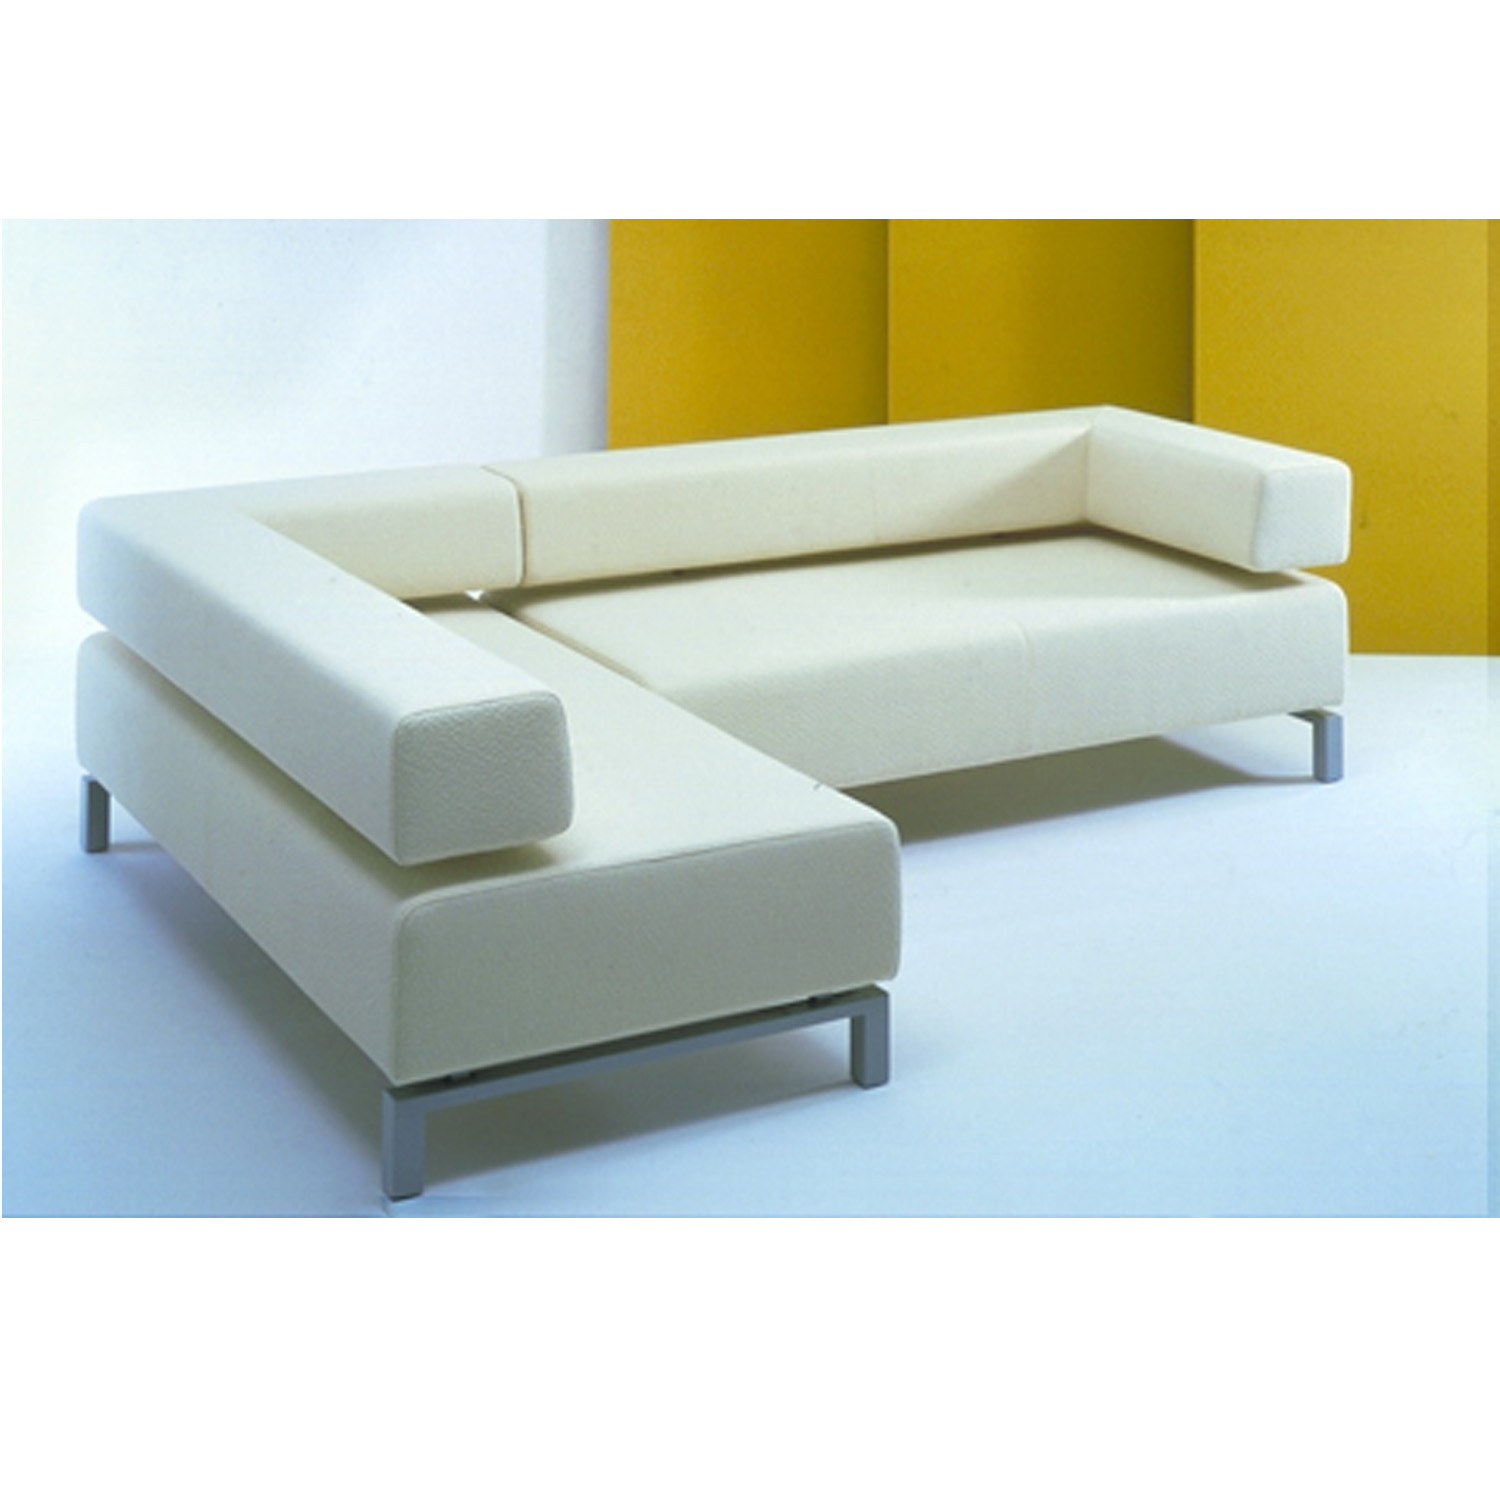 HM991 Modular Soft Seating